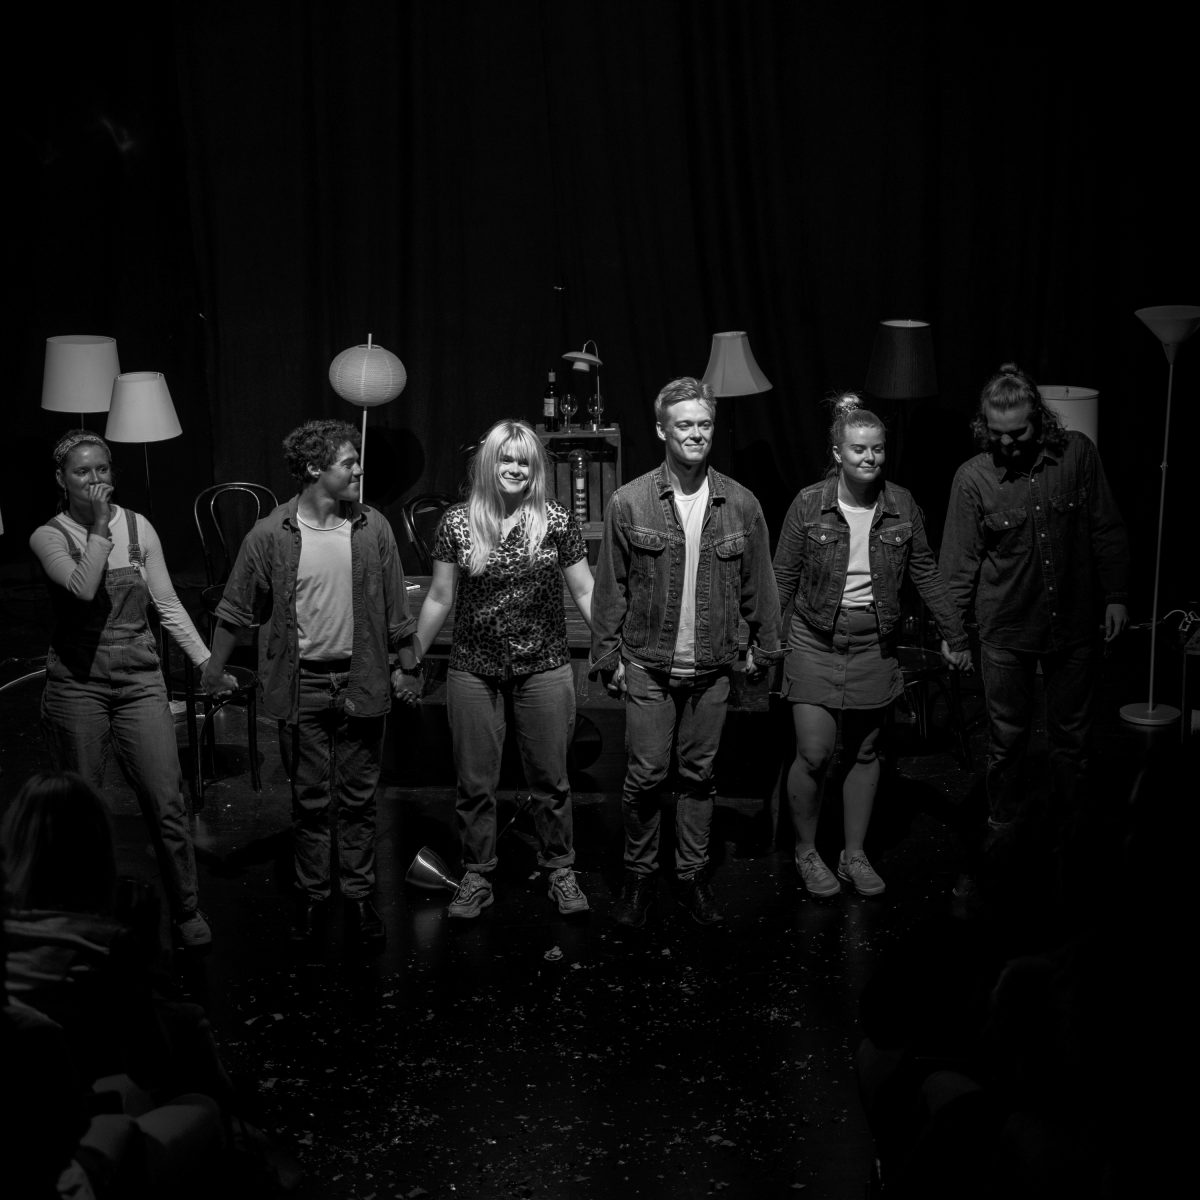 Theater photography - Den sidste nadver (The Last Supper) at Vildskud 2019 theater festival